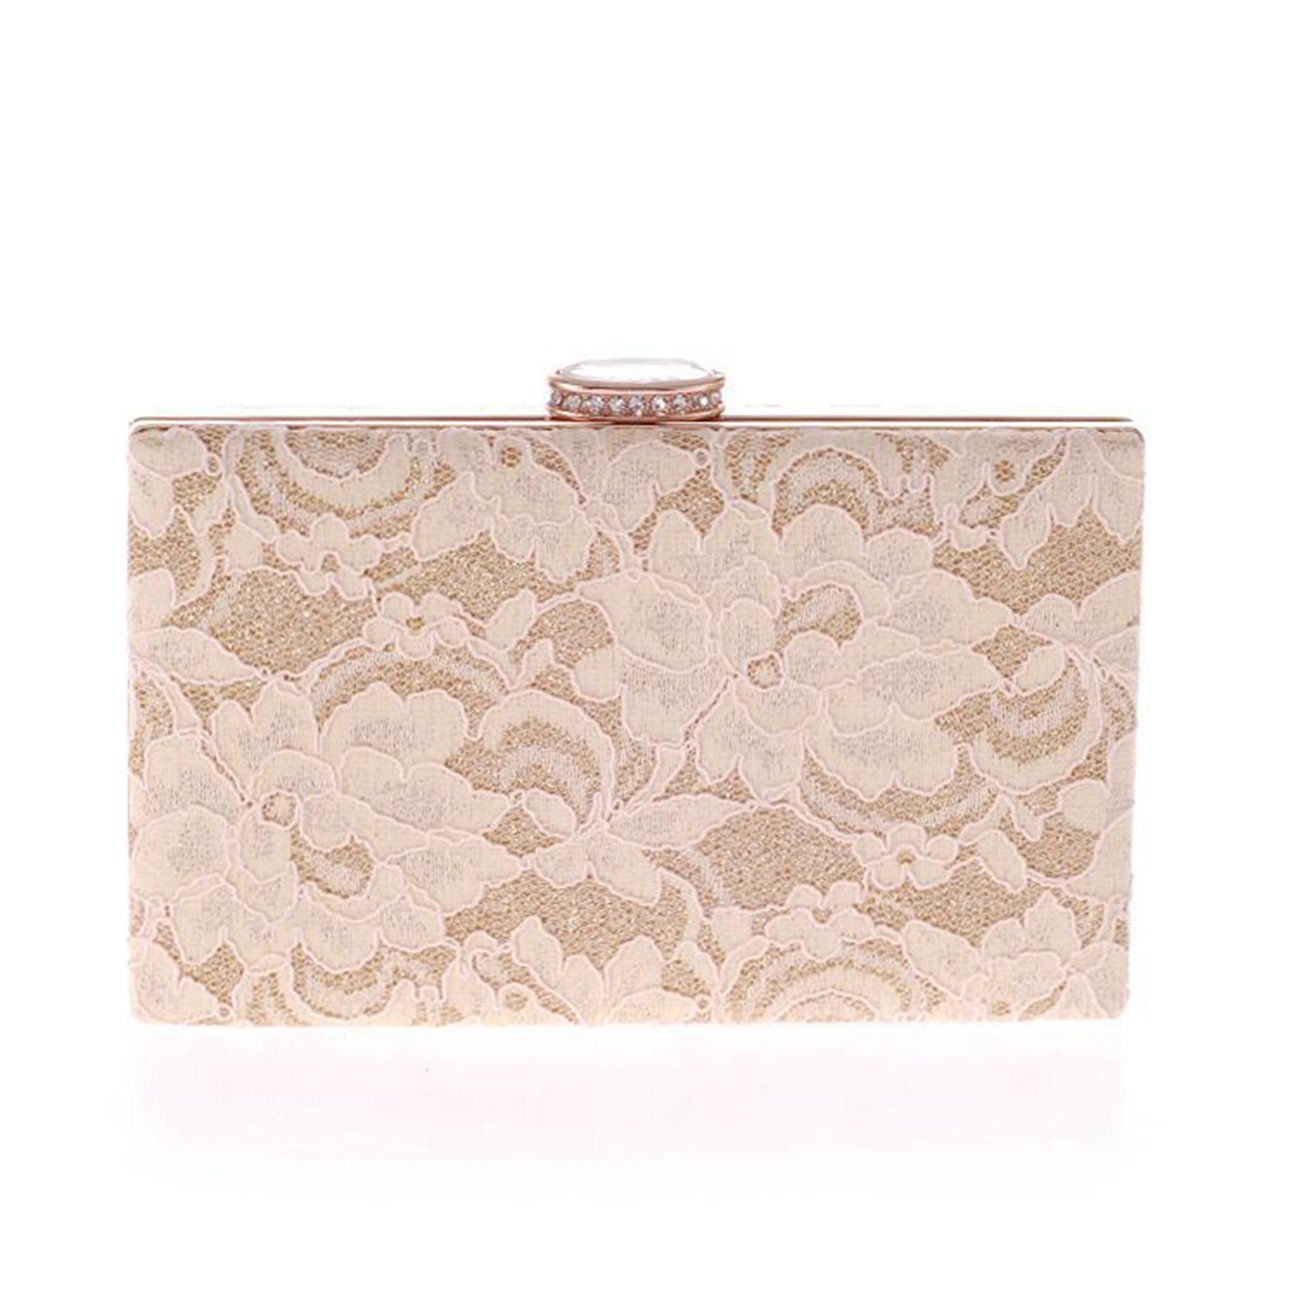 Fit&Wit Clutch Bag Womens Elegant Lace Flower Evening Cocktail Wedding Party Purse